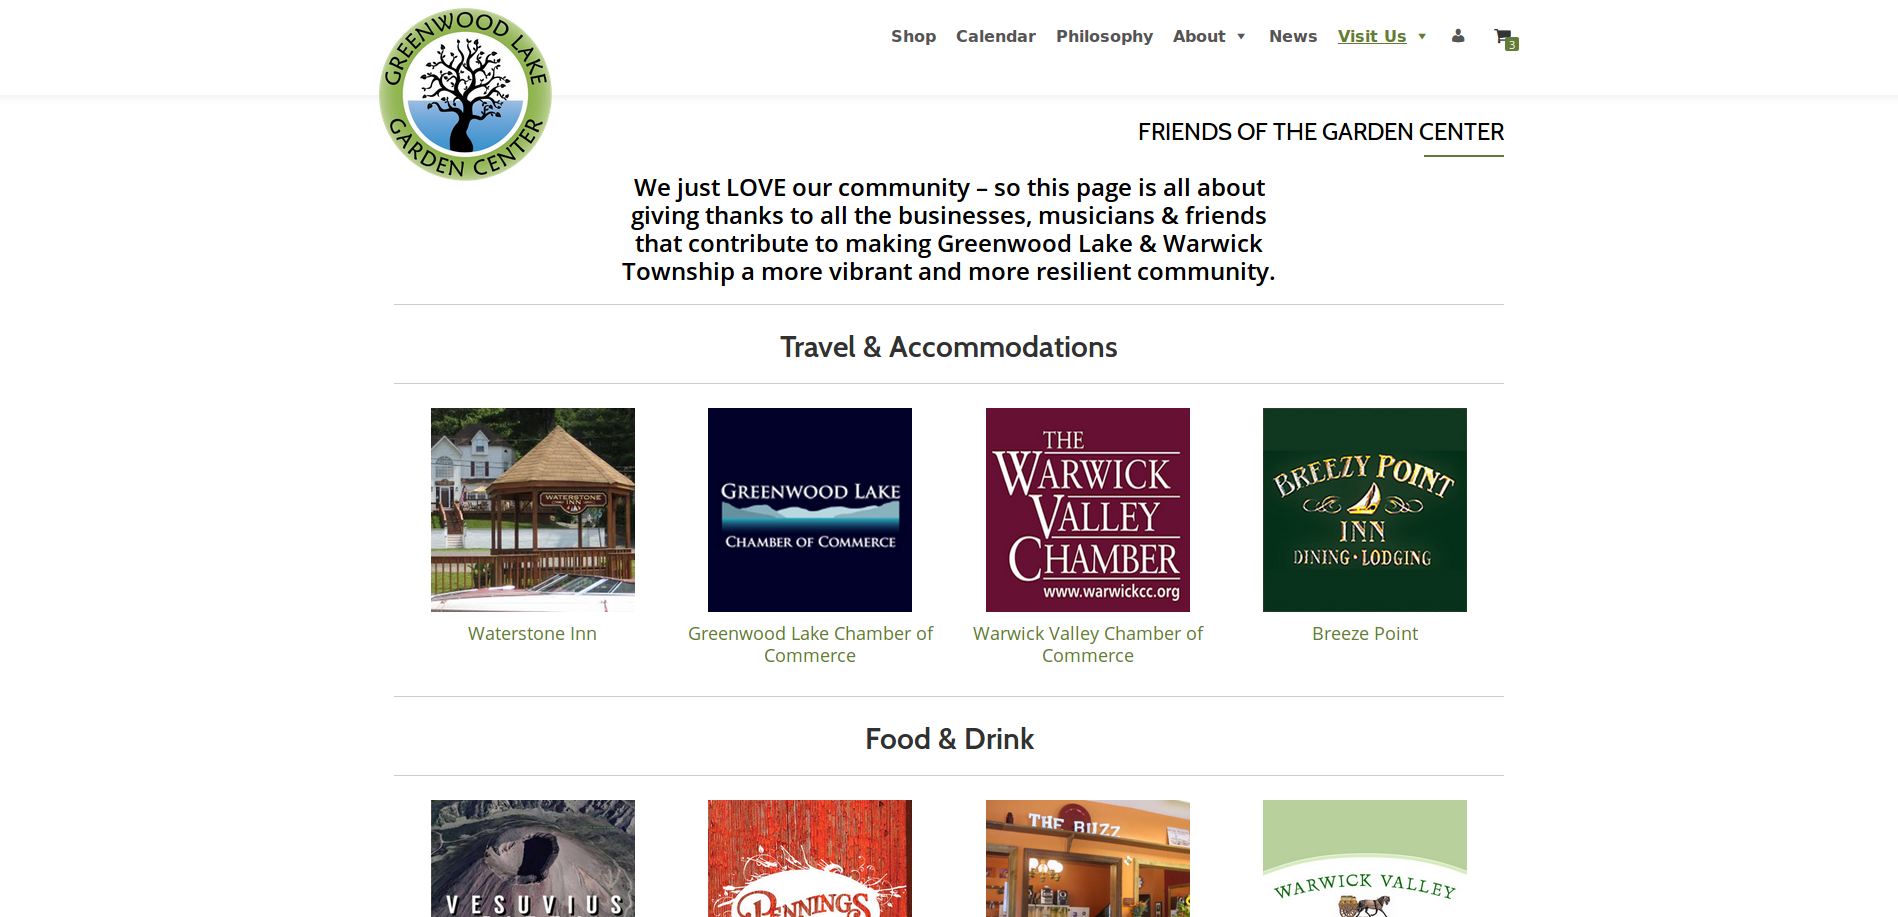 New Website Meet Our Friends Page